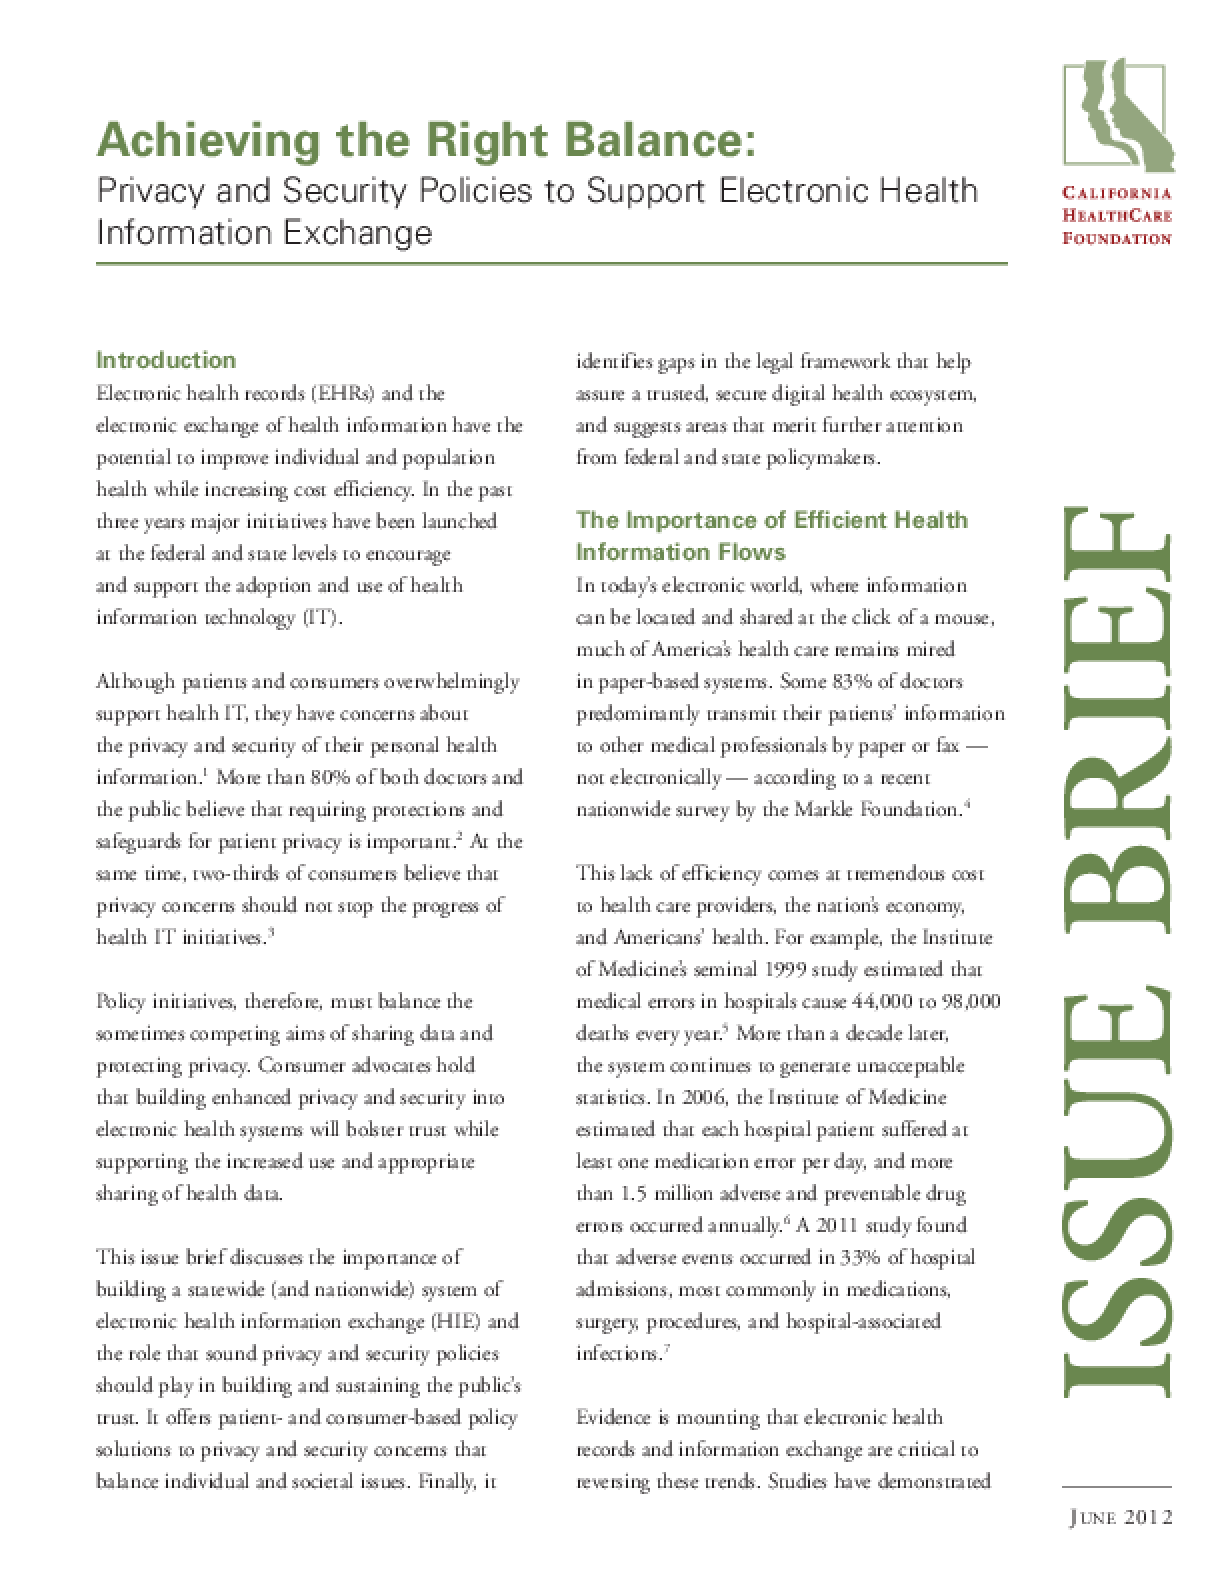 Achieving the Right Balance: Privacy and Security Policies to Support Electronic Health Information Exchange